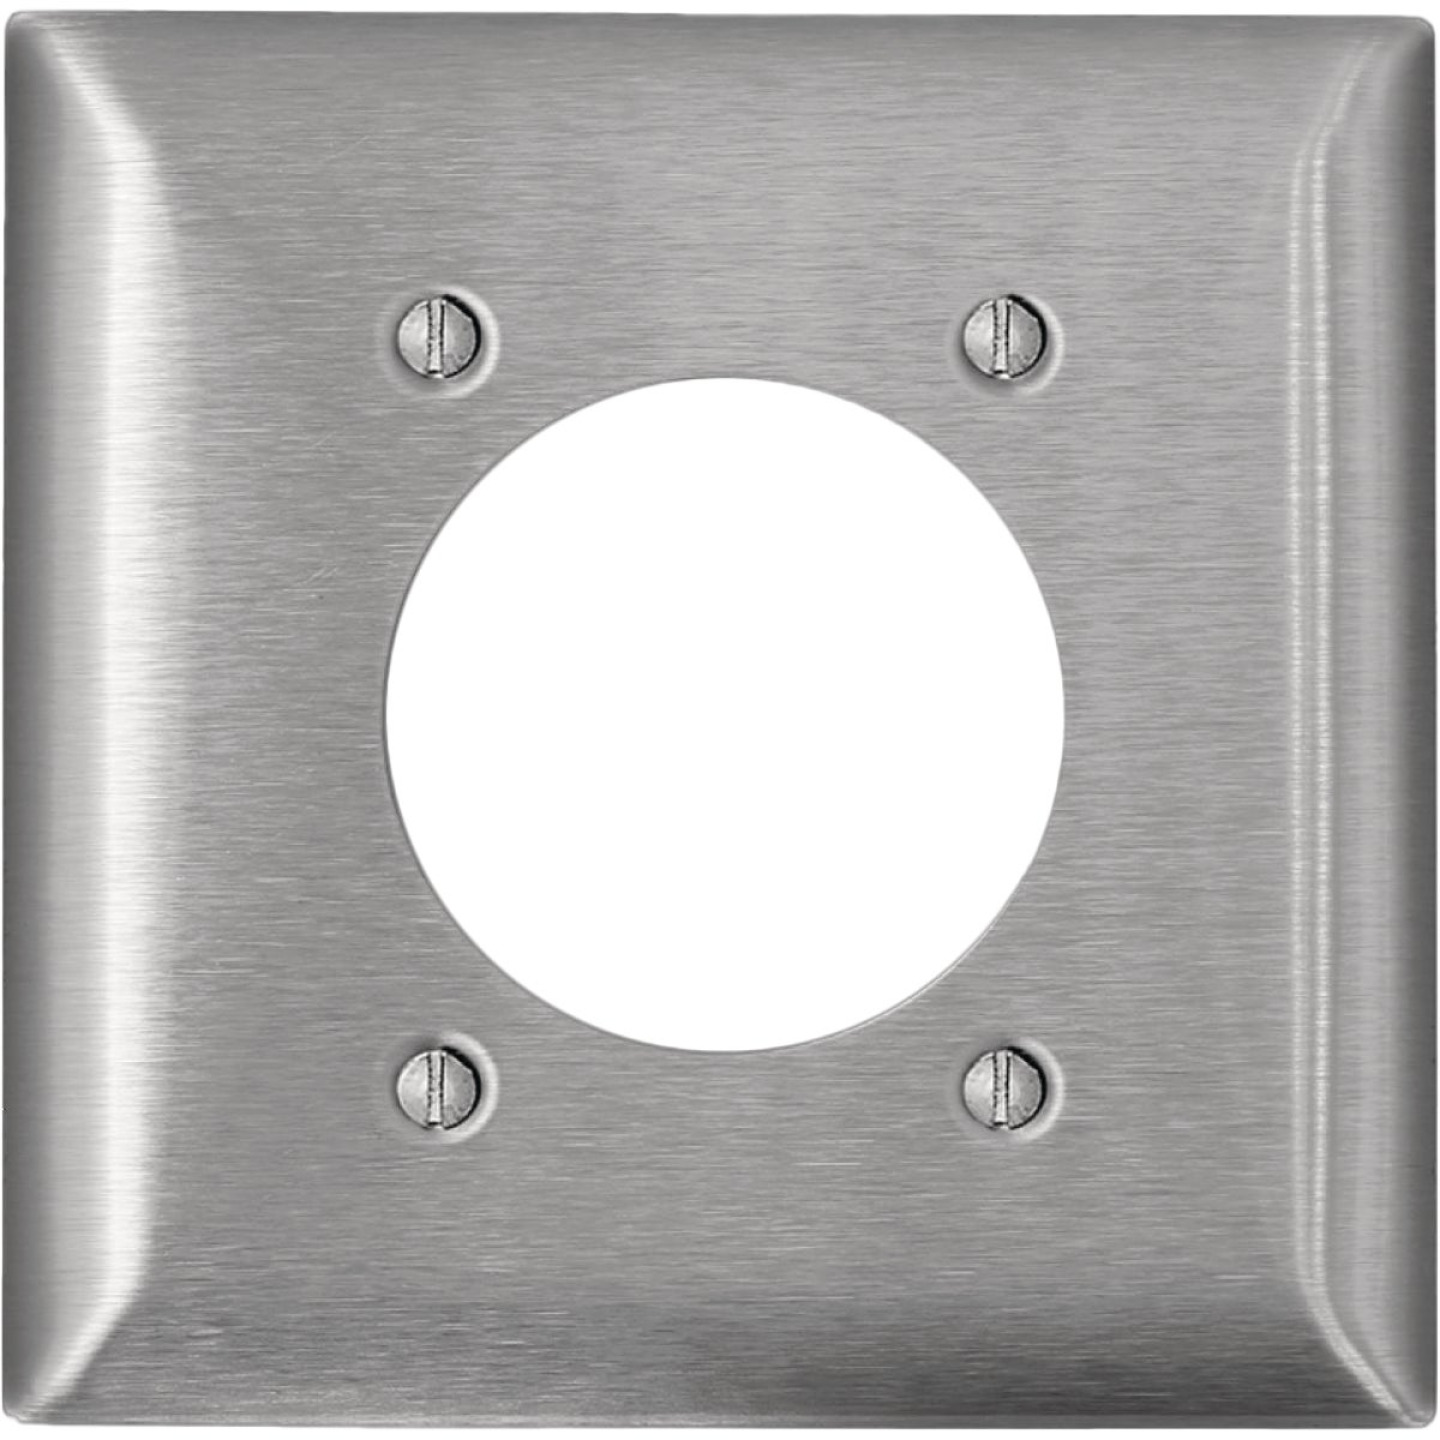 Leviton C-Series 2-Gang Stainless Steel Range/Dryer Wall Plate Image 1